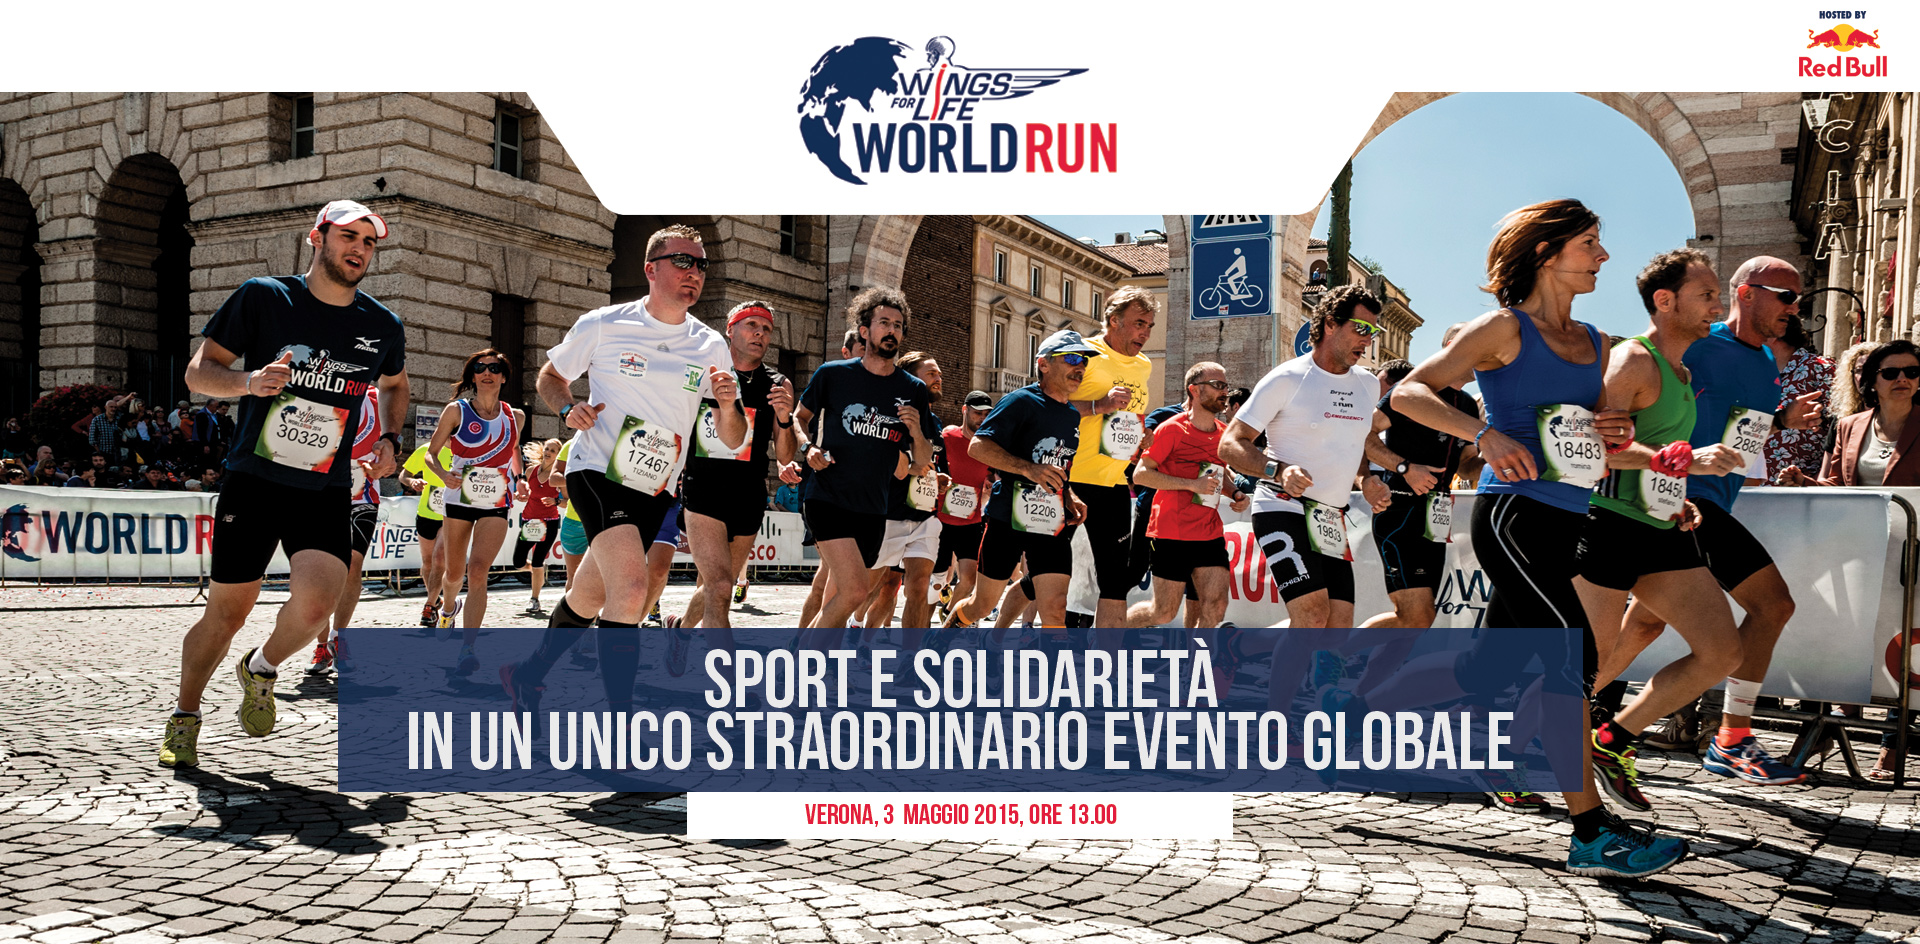 HEADER_WORLD_RUN